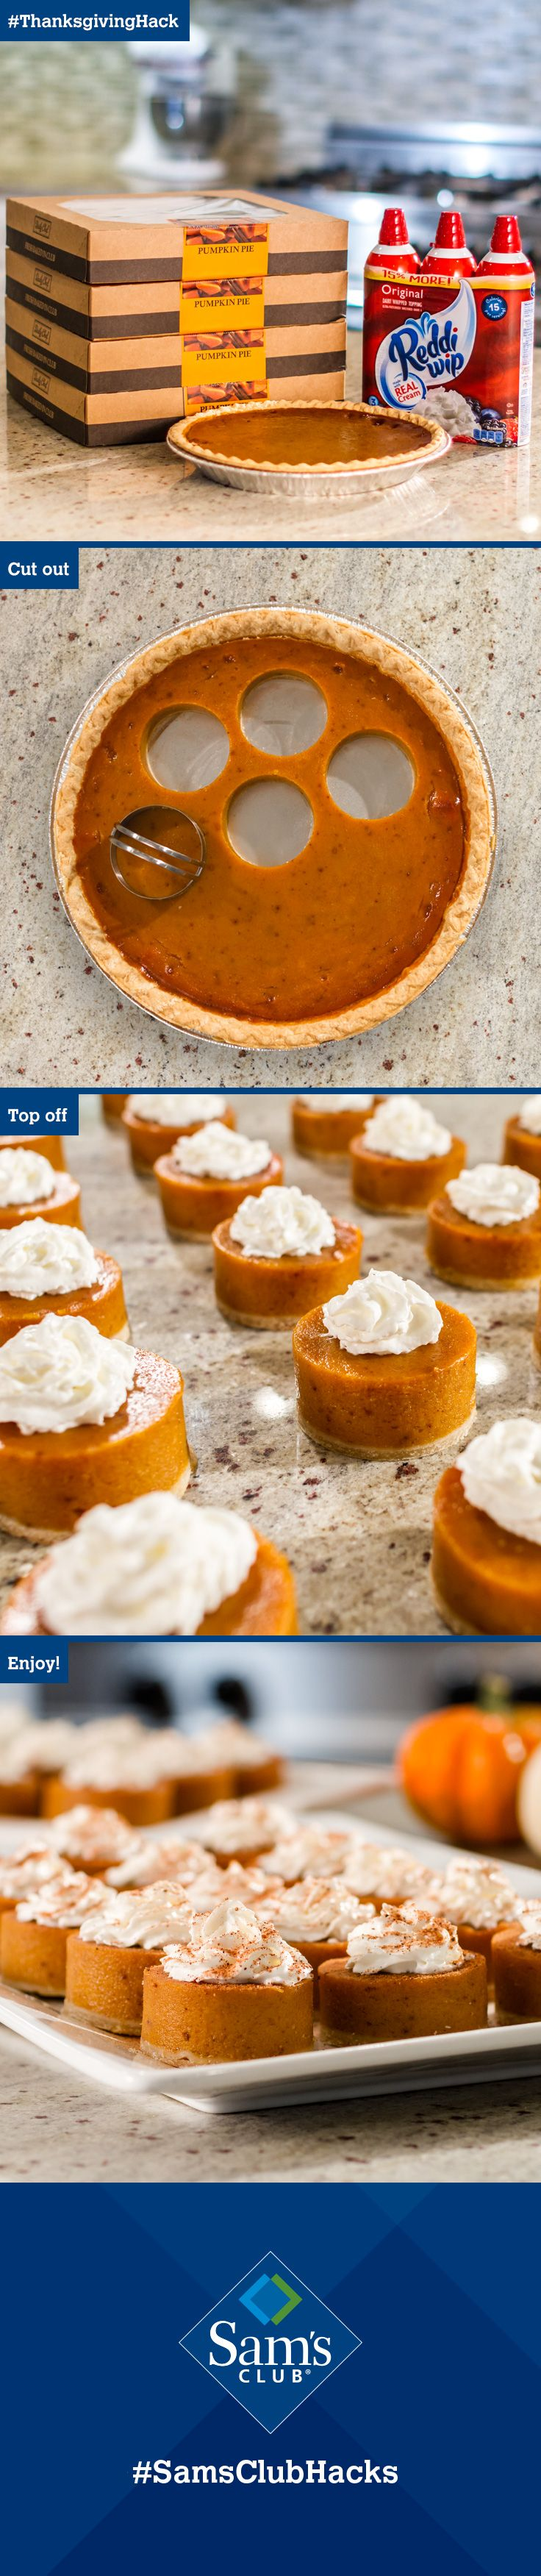 "Family will gobble up this easy #ThanksgivingHack! Take a 2"" biscuit cutter to four Sam's Club pumpkin pies and voila! Adorable minis for 32 guests. Top off with Reddi-wip and SERVE IMMEDIATELY. Happy Thanksgiving! #SamsClubHacks                                                                                                                                                     More"